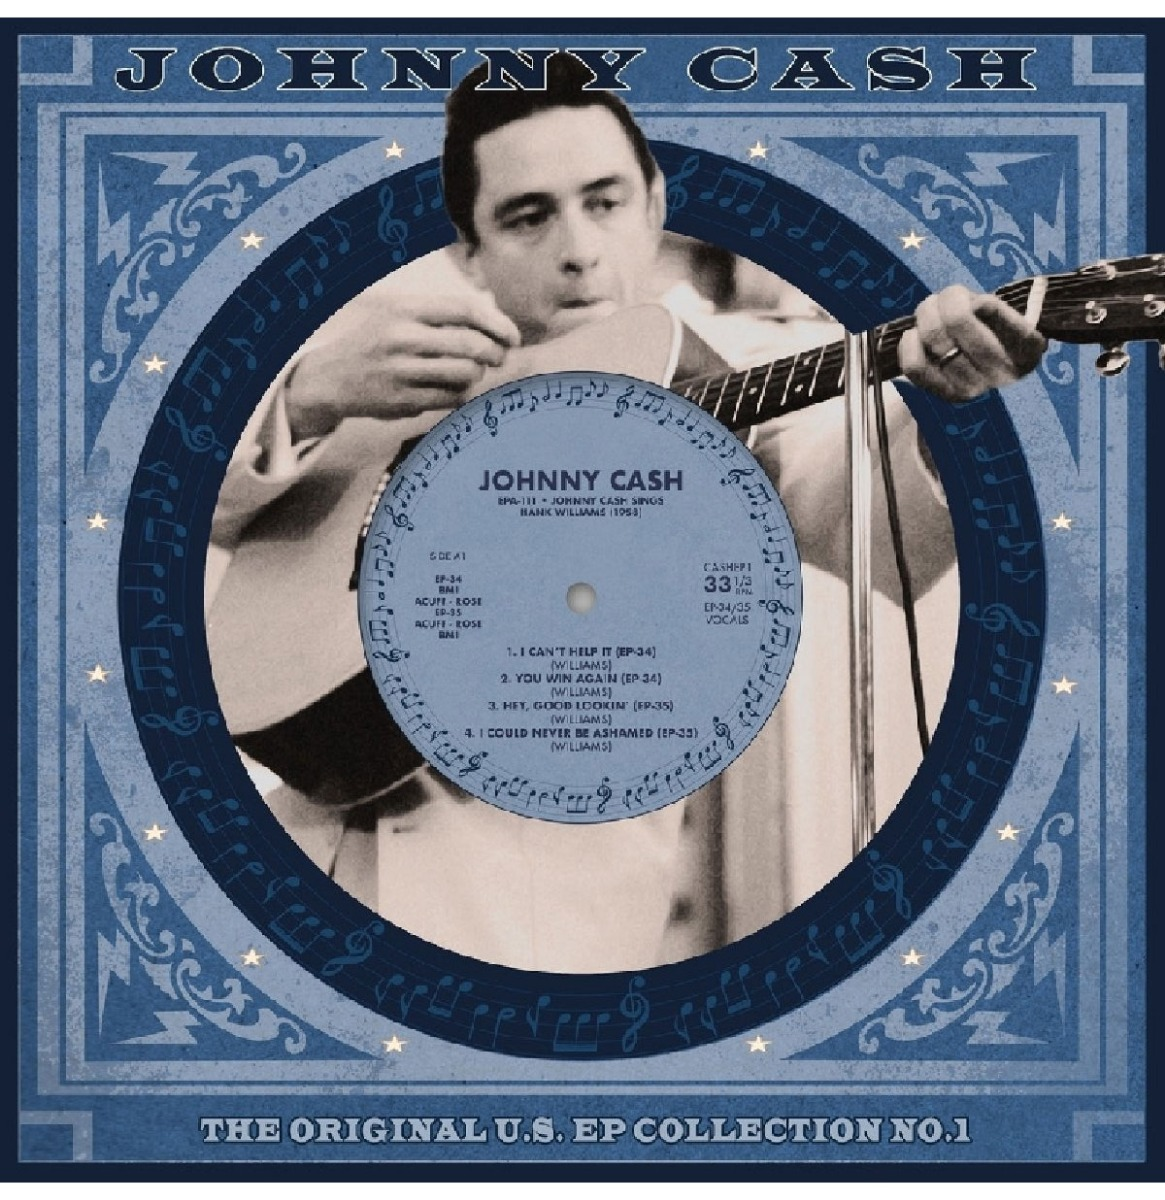 Johnny Cash - The Original U.S. EP Collection No. 1 EP Beperkte Oplage